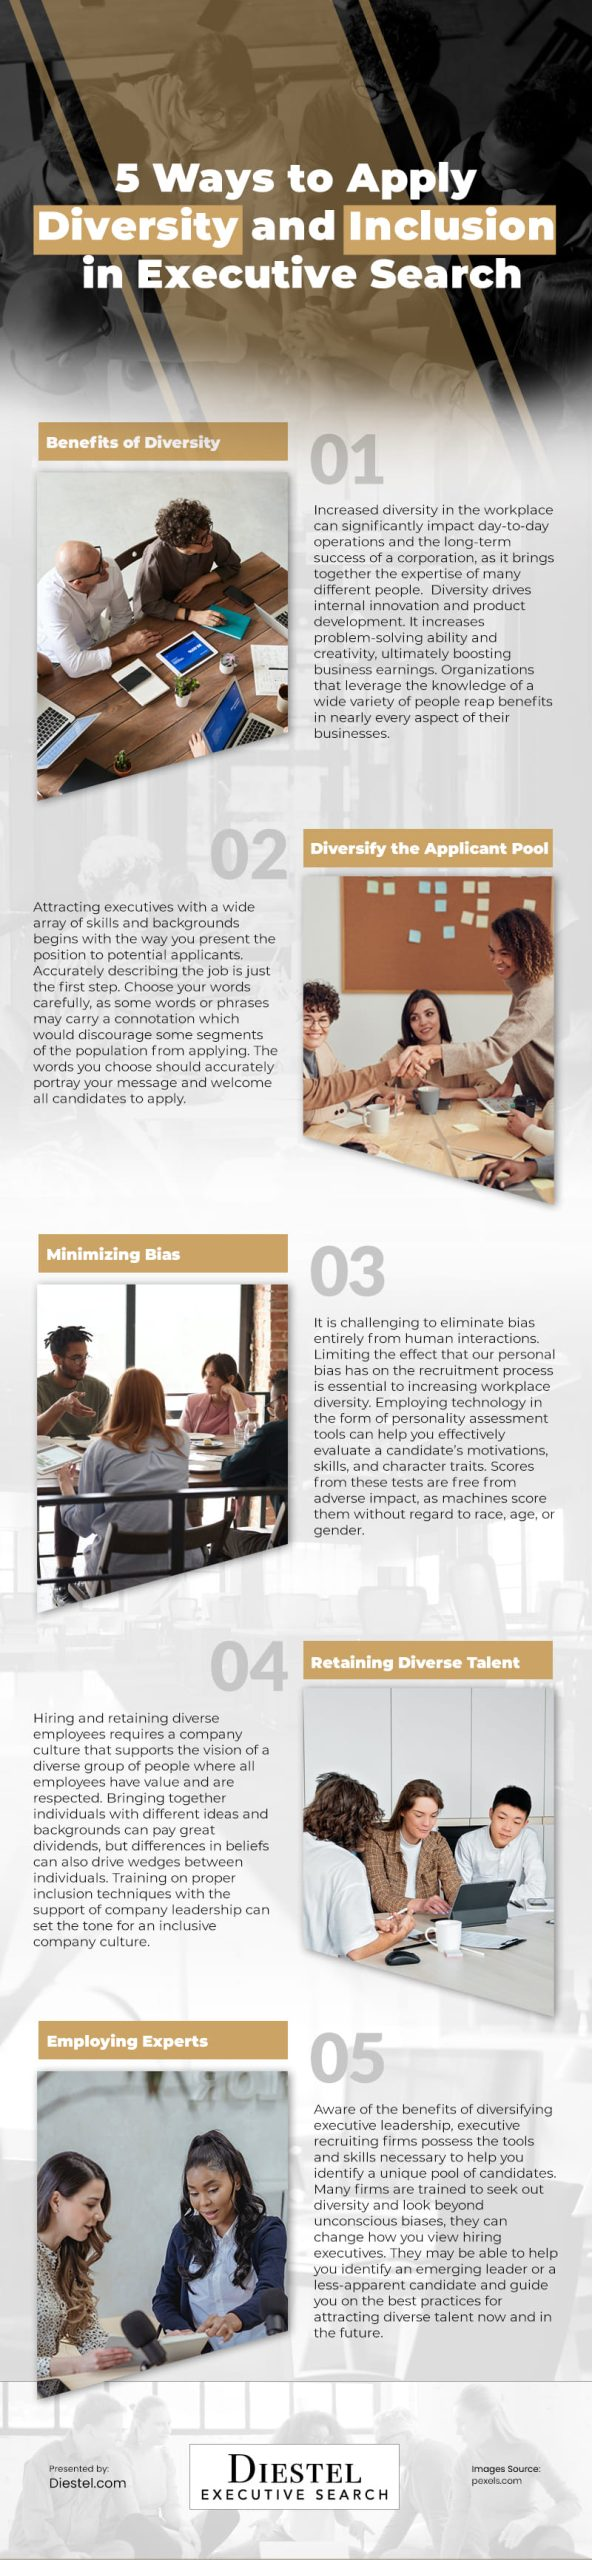 5 Ways to Apply Diversity and Inclusion in Executive Search Infographic